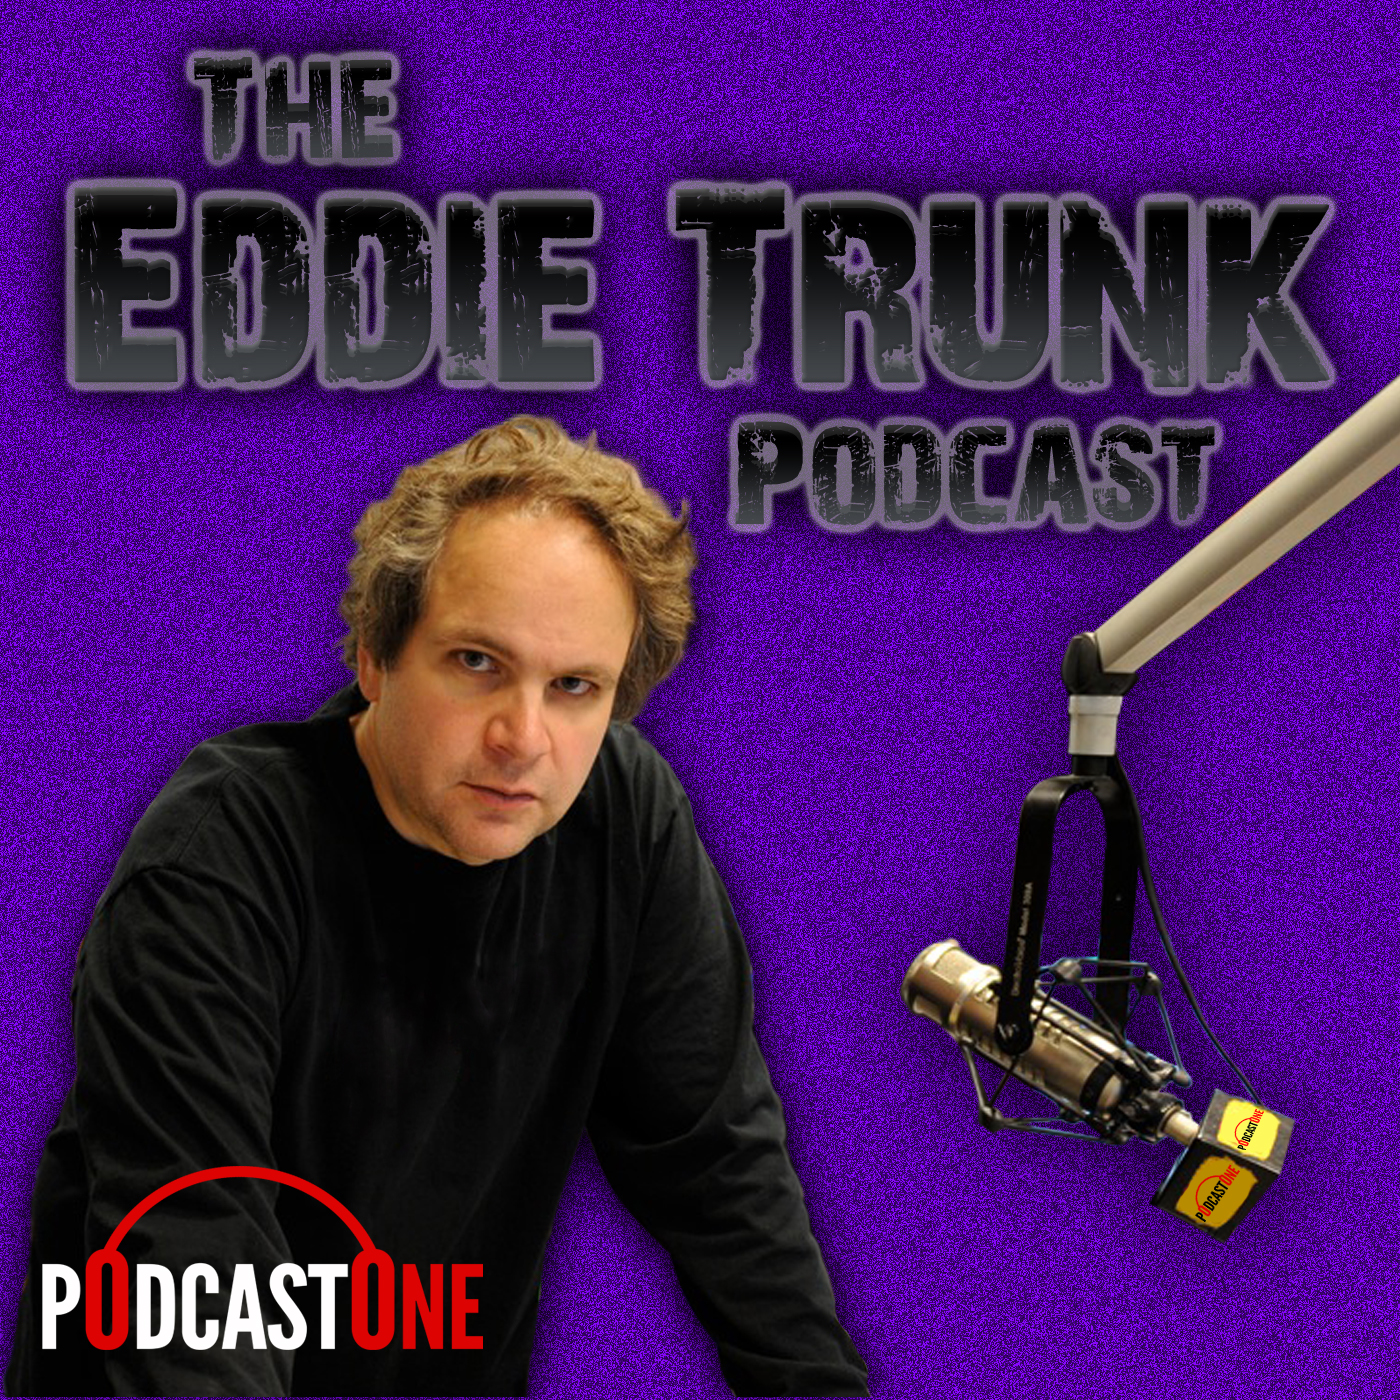 The Eddie Trunk Podcast